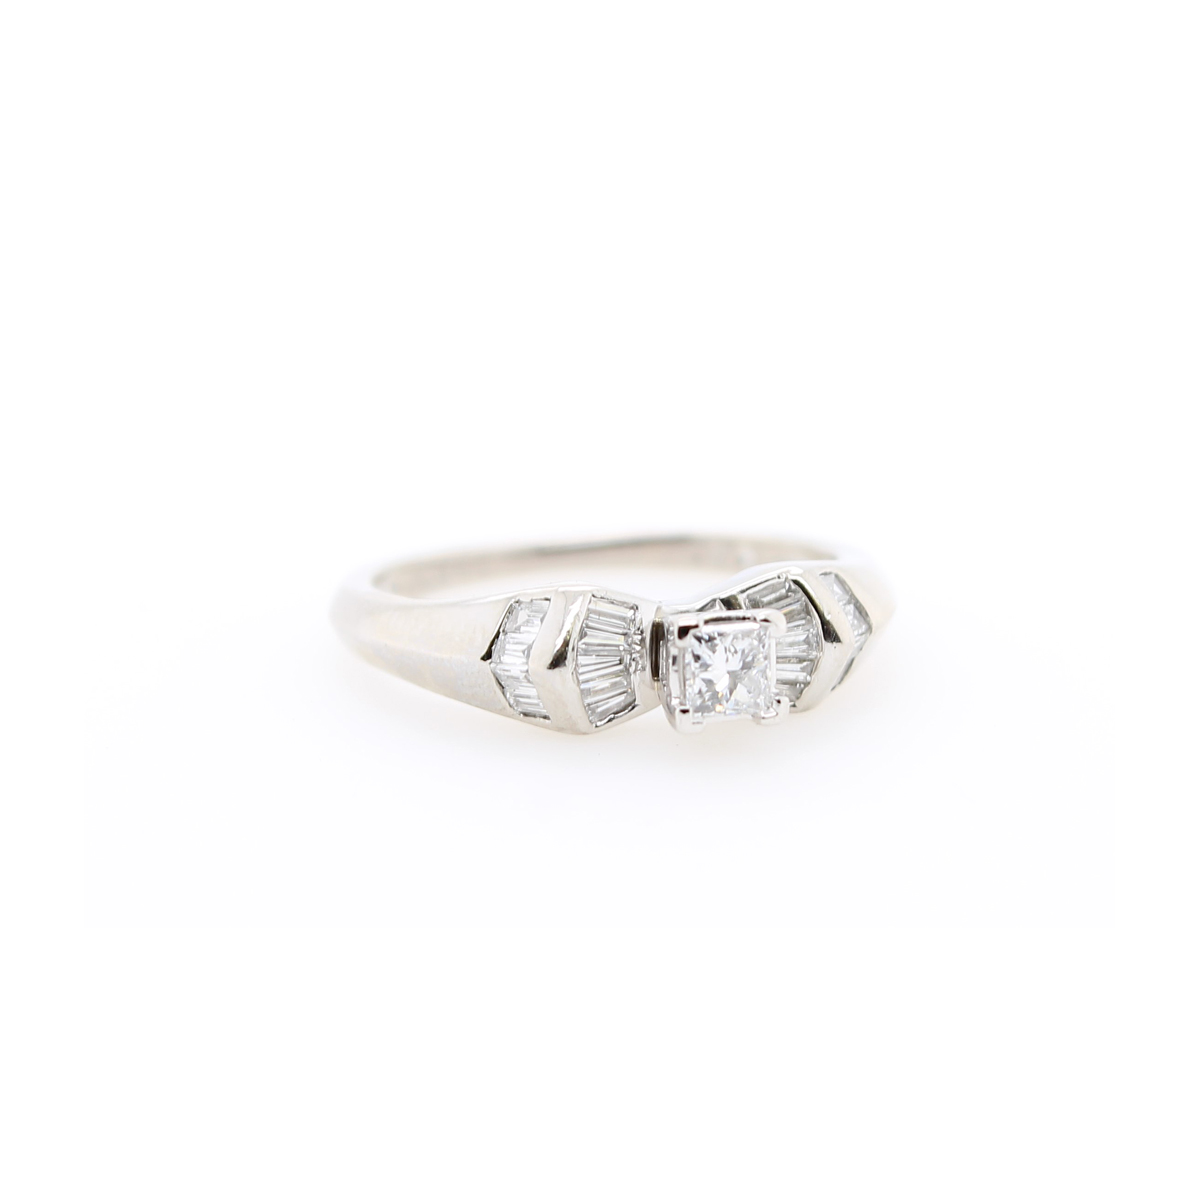 Vintage Platinum Diamond Bridal Ring